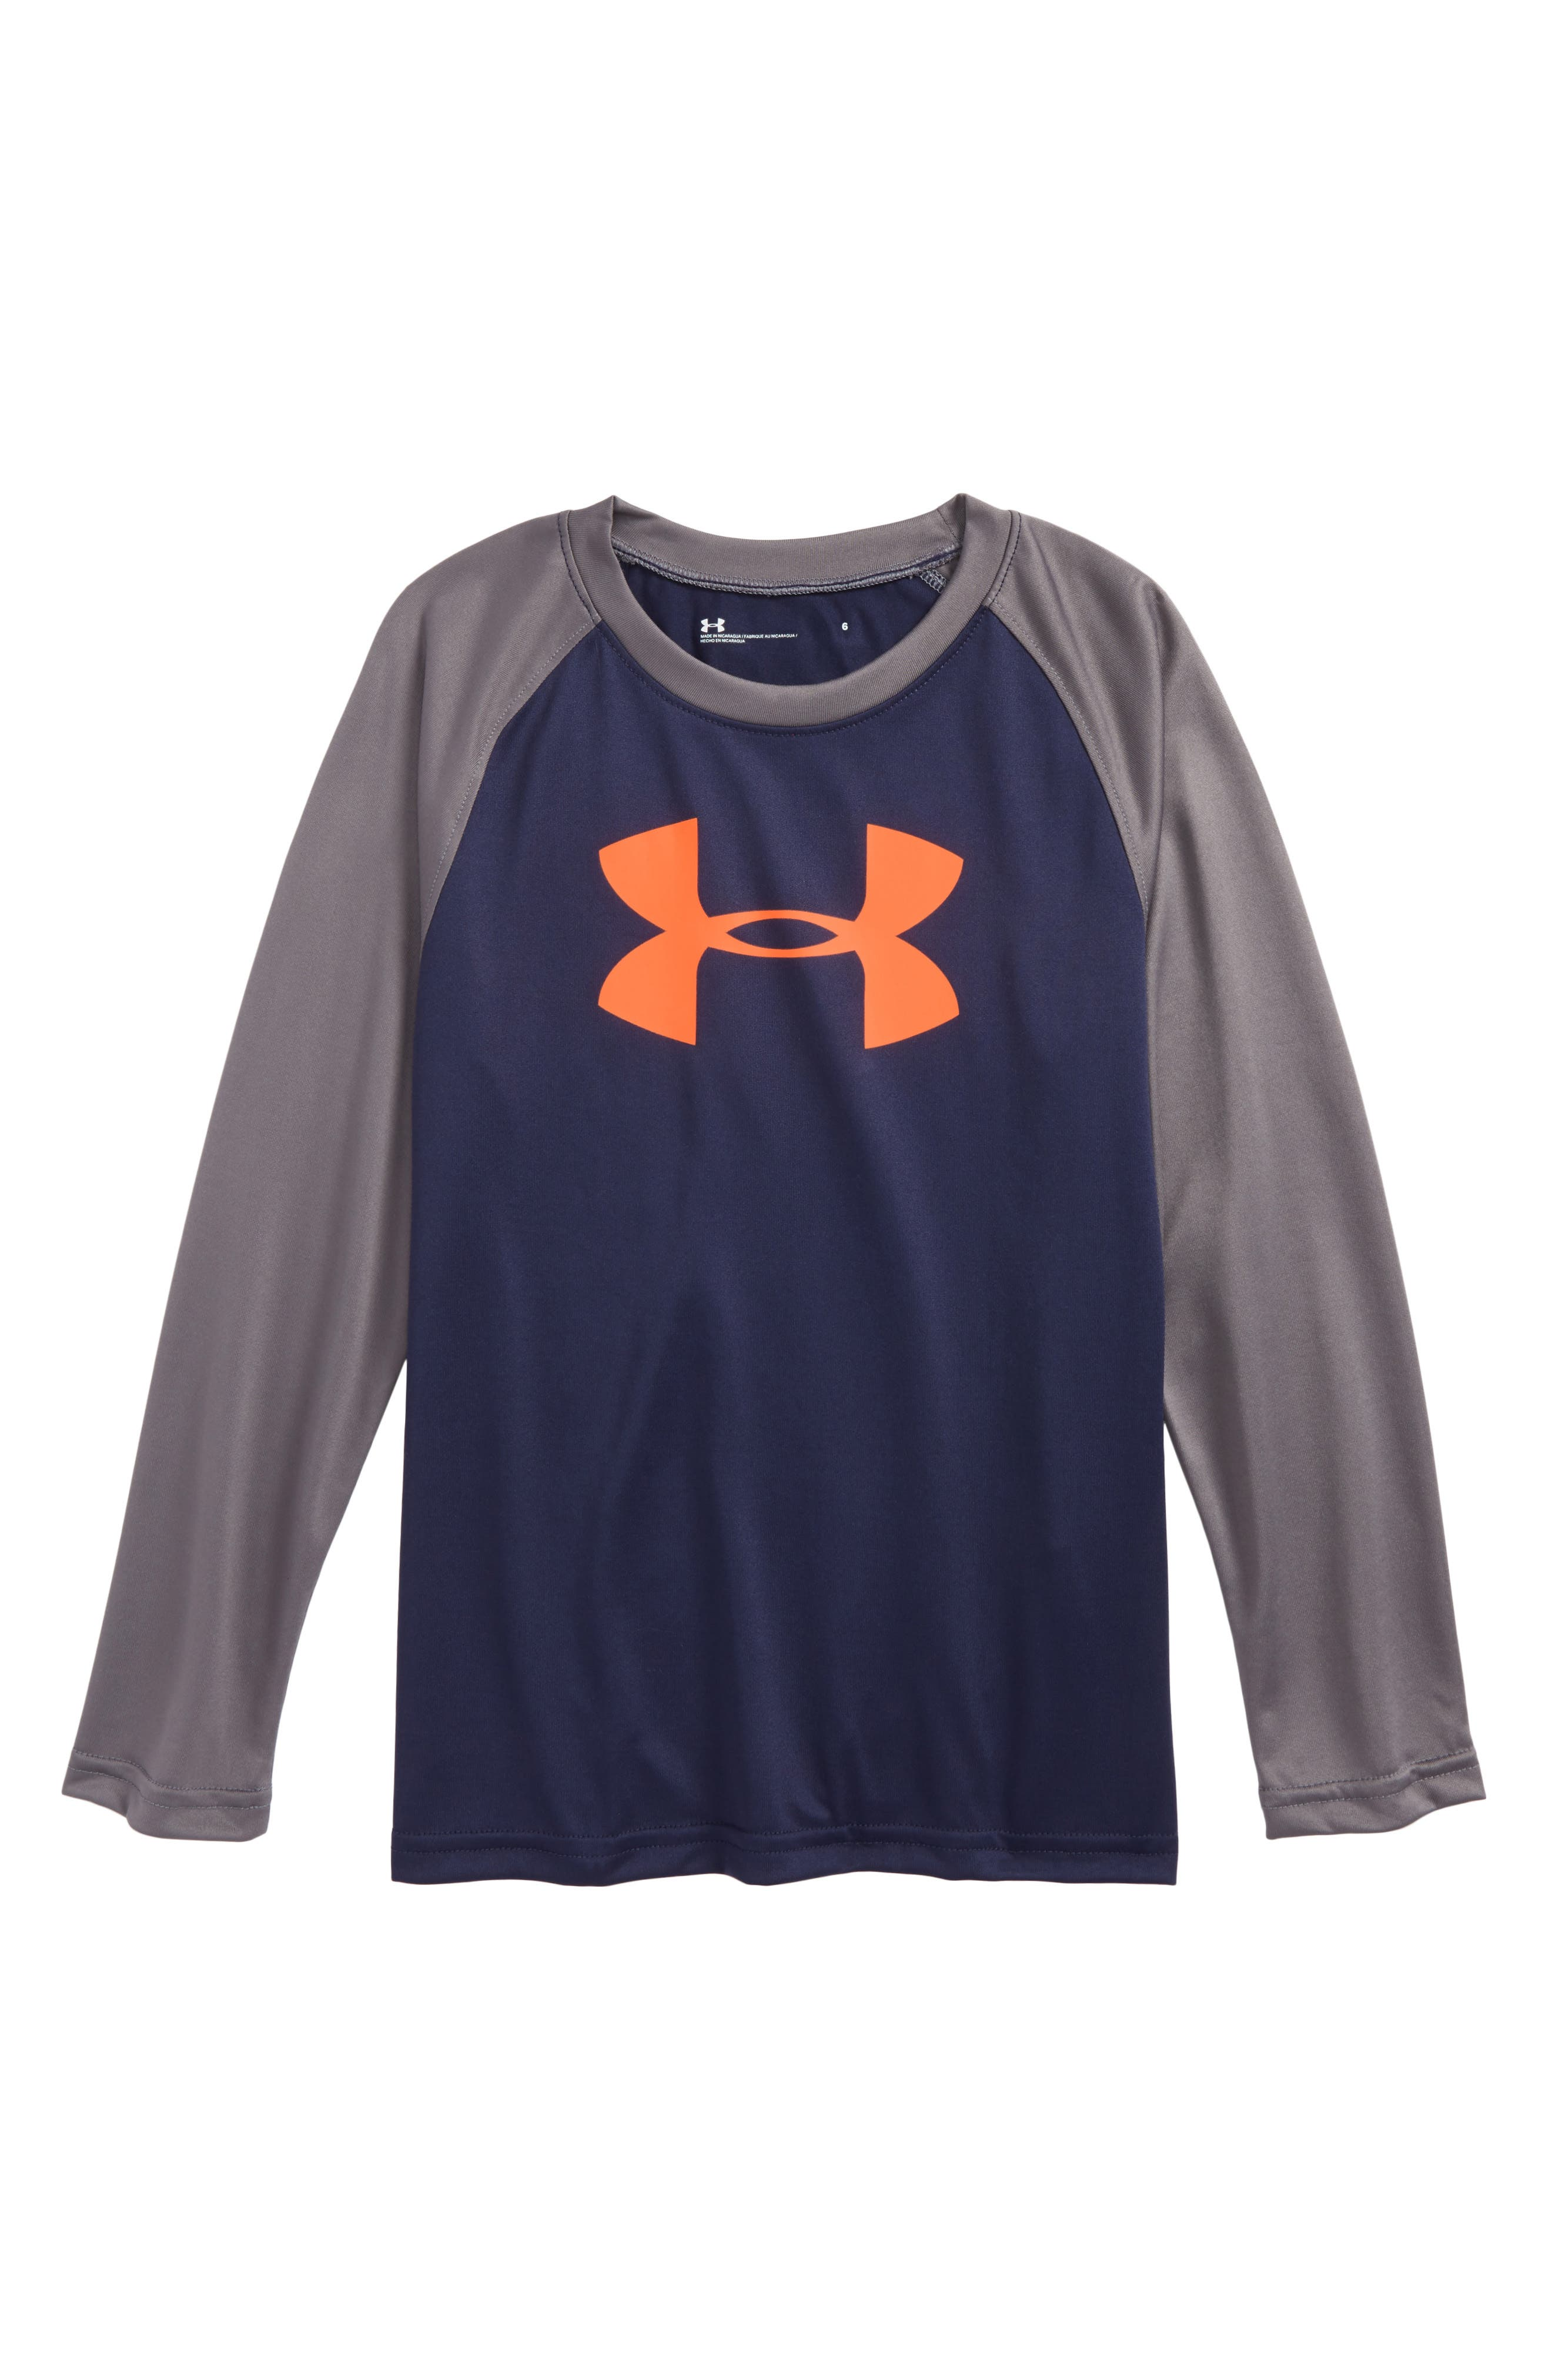 Under Armour Big Logo Raglan T-shirt (Toddler Boys & Little Boys)